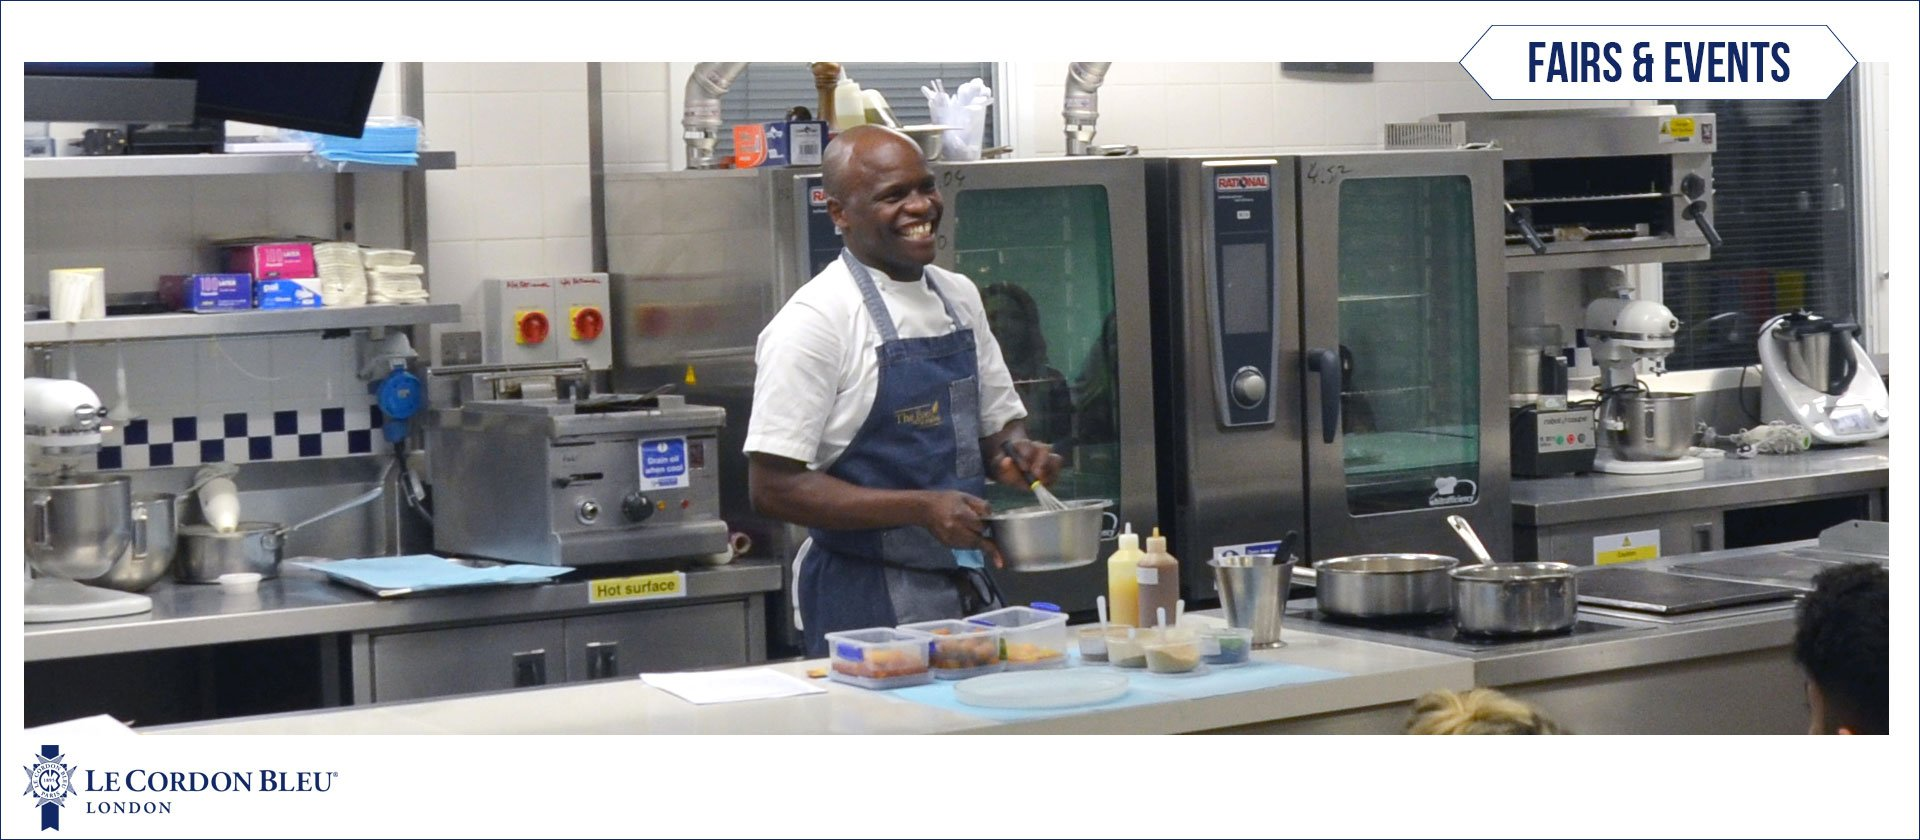 Chef Petrus Madutlela at Le Cordon Bleu London